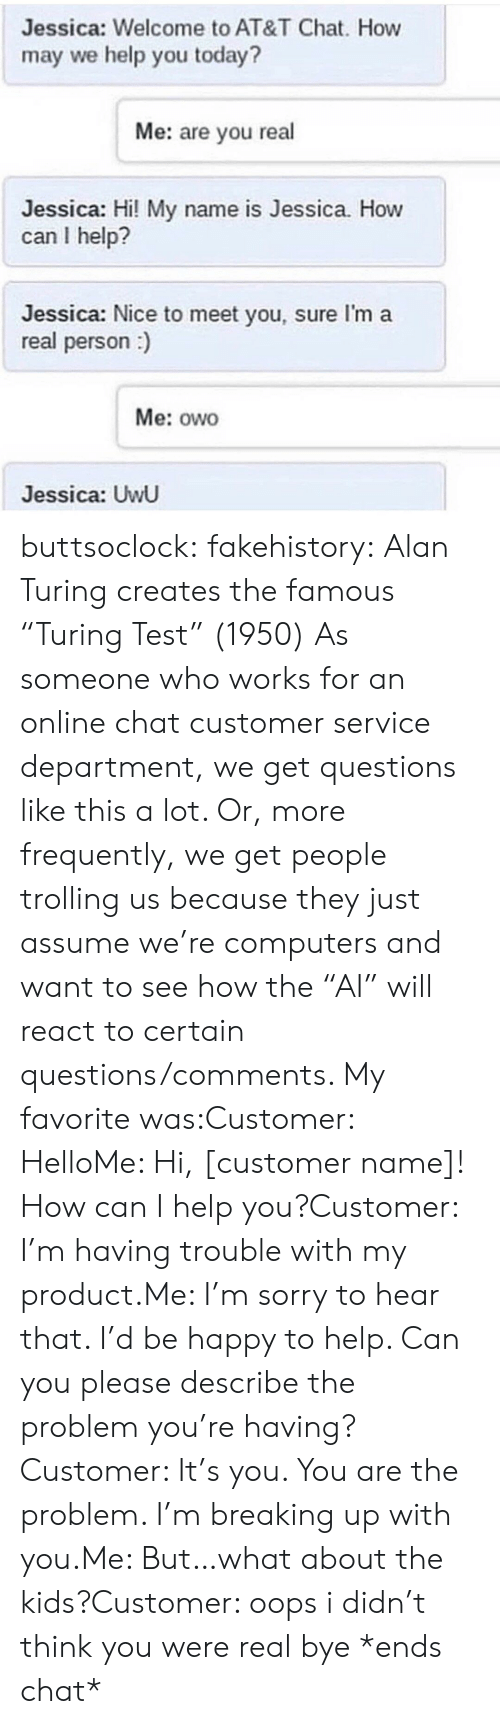 """Trolling: Jessica: Welcome to AT&T Chat. How  may we help you today?  Me: are you real  Jessica: Hi! My name is Jessica. How  can I help?  Jessica: Nice to meet you, sure I'm a  real person)  Me: owo  Jessica: UwU buttsoclock:  fakehistory: Alan Turing creates the famous """"Turing Test"""" (1950) As someone who works for an online chat customer service department, we get questions like this a lot. Or, more frequently, we get people trolling us because they just assume we're computers and want to see how the""""AI"""" will react to certain questions/comments. My favorite was:Customer: HelloMe: Hi, [customer name]! How can I help you?Customer: I'm having trouble with my product.Me: I'm sorry to hear that. I'd be happy to help. Can you please describe the problem you're having?Customer: It's you. You are the problem. I'm breaking up with you.Me: But…what about the kids?Customer: oops i didn't think you were real bye *ends chat*"""